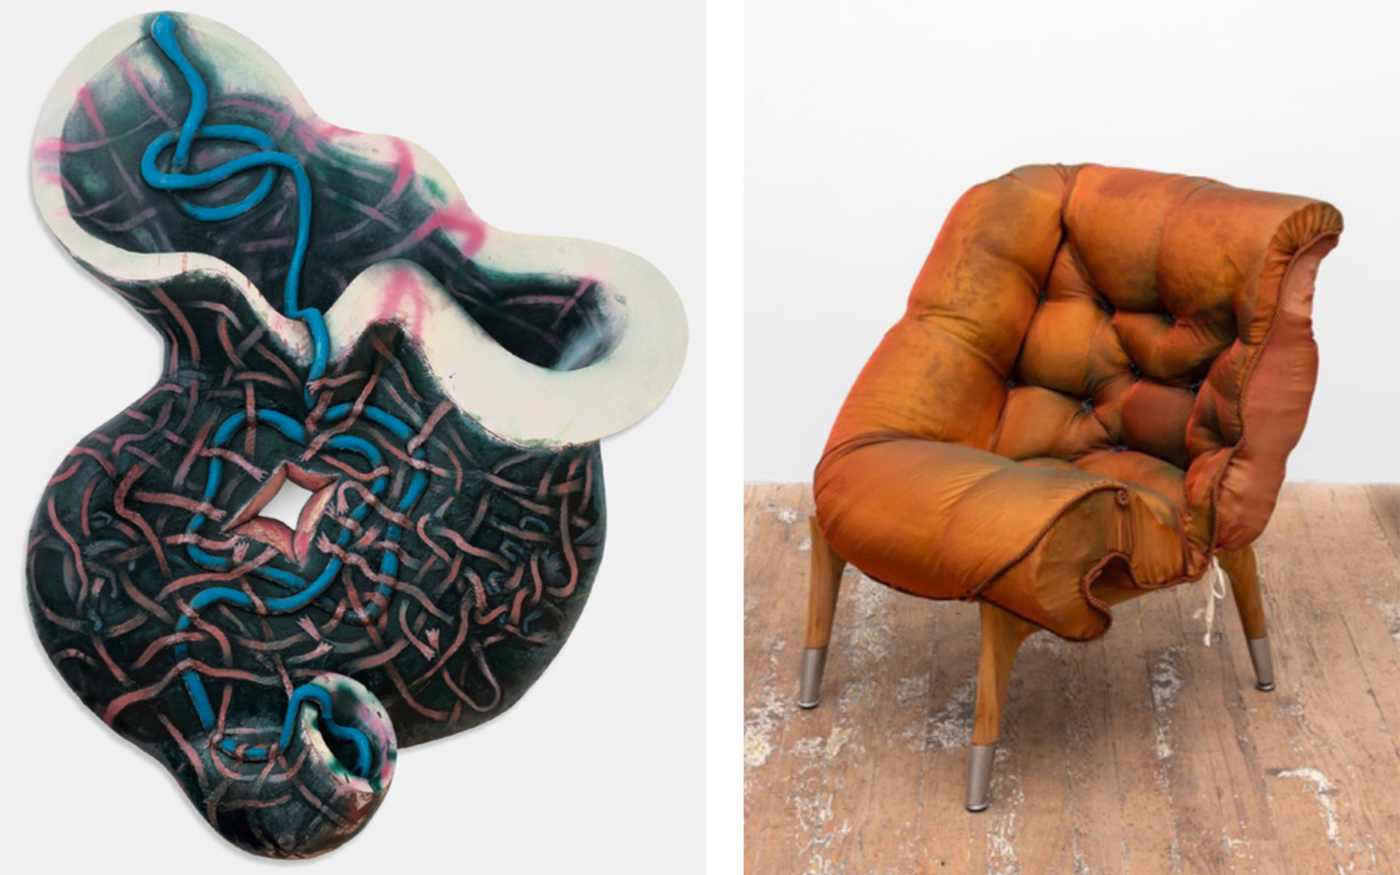 Postponed: Public Opening | Wild Life: Elizabeth Murray and Jessi Reaves